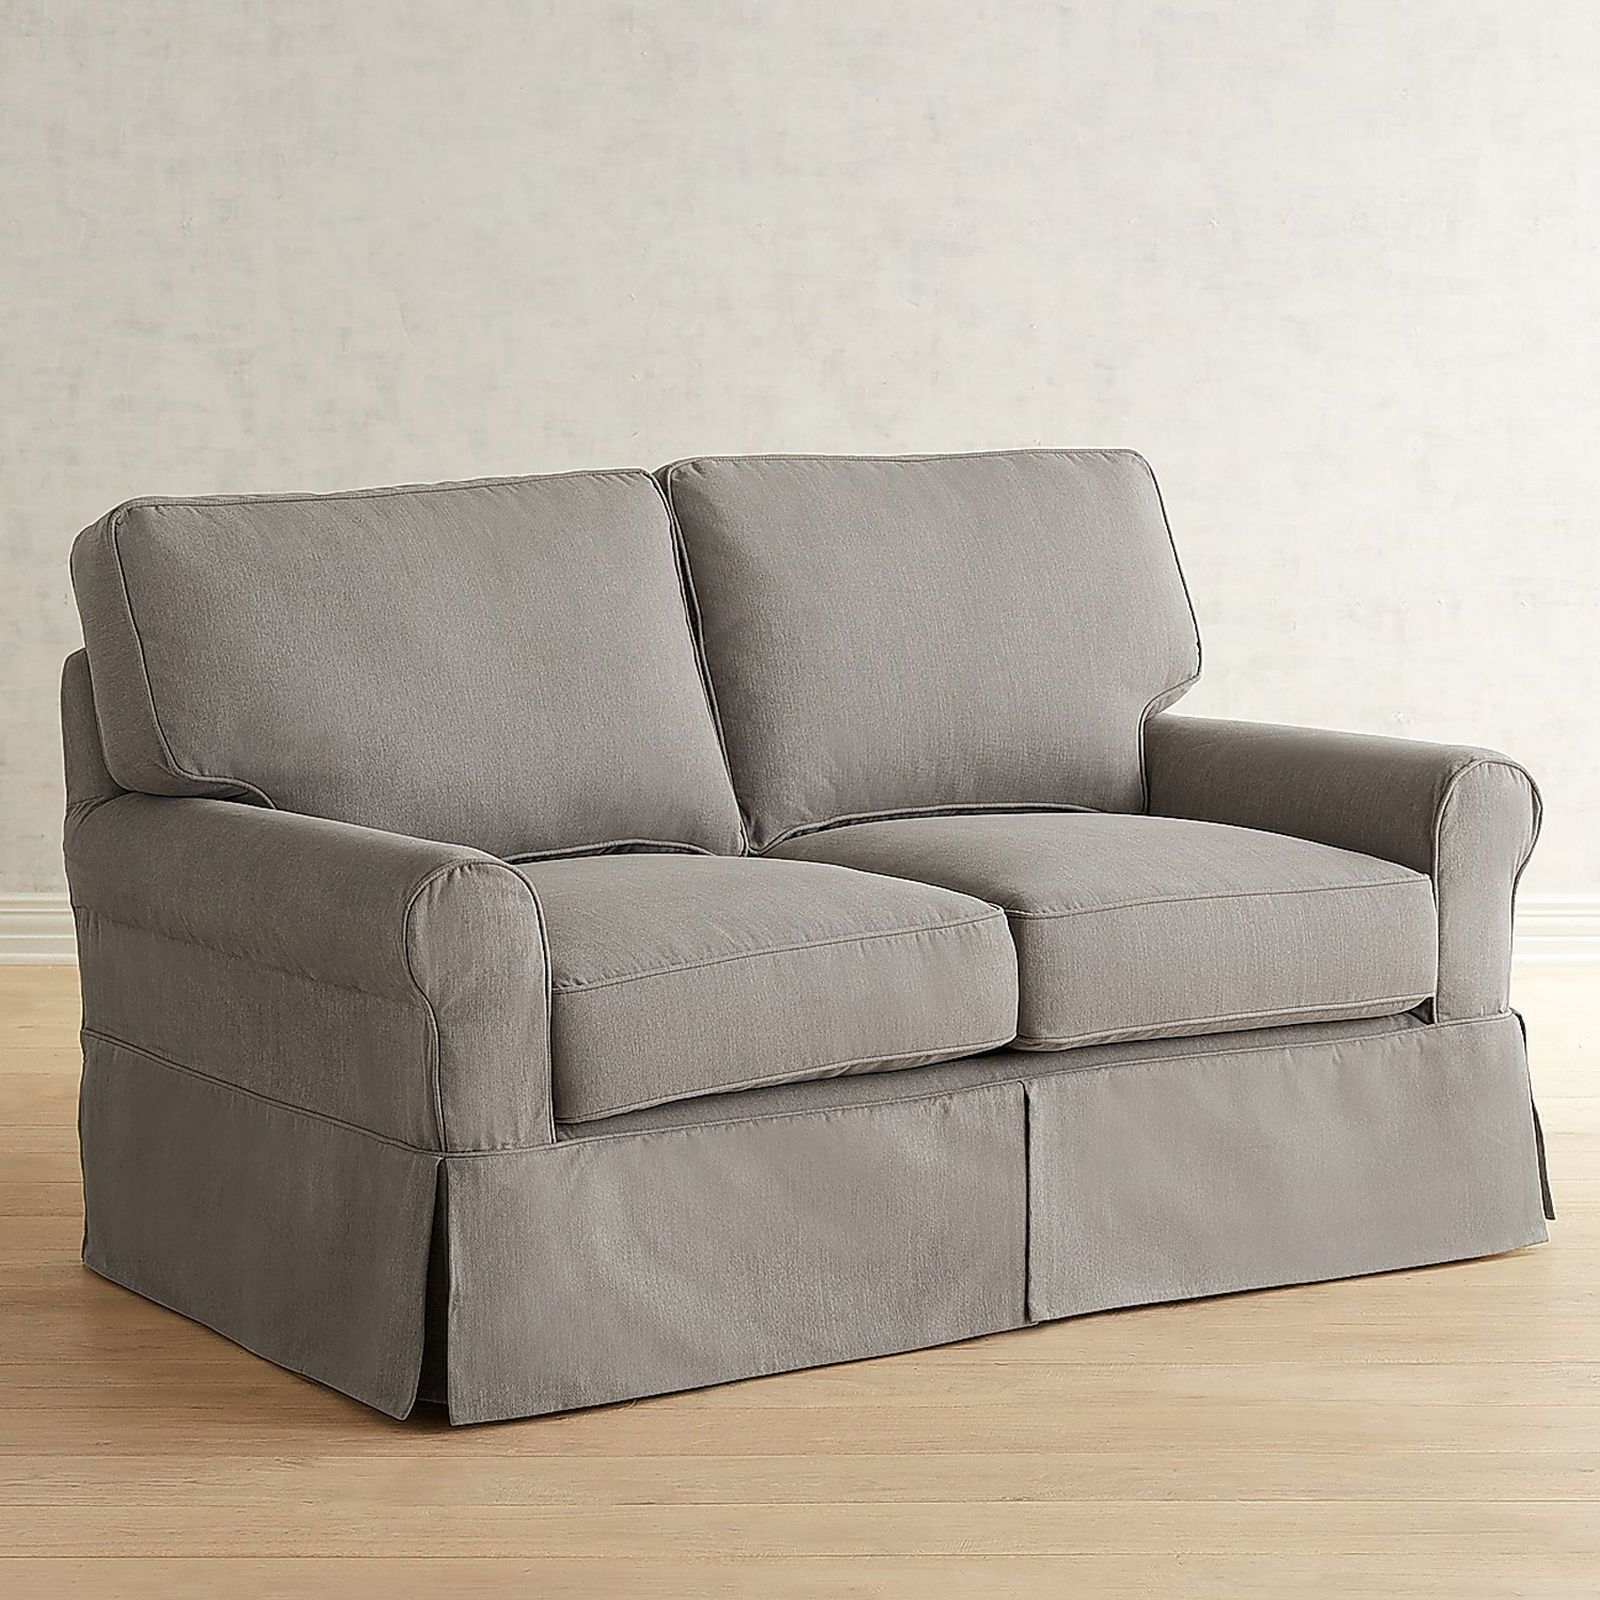 Lia Pierformance Slate Gray Slipcovered Loveseat $1,199